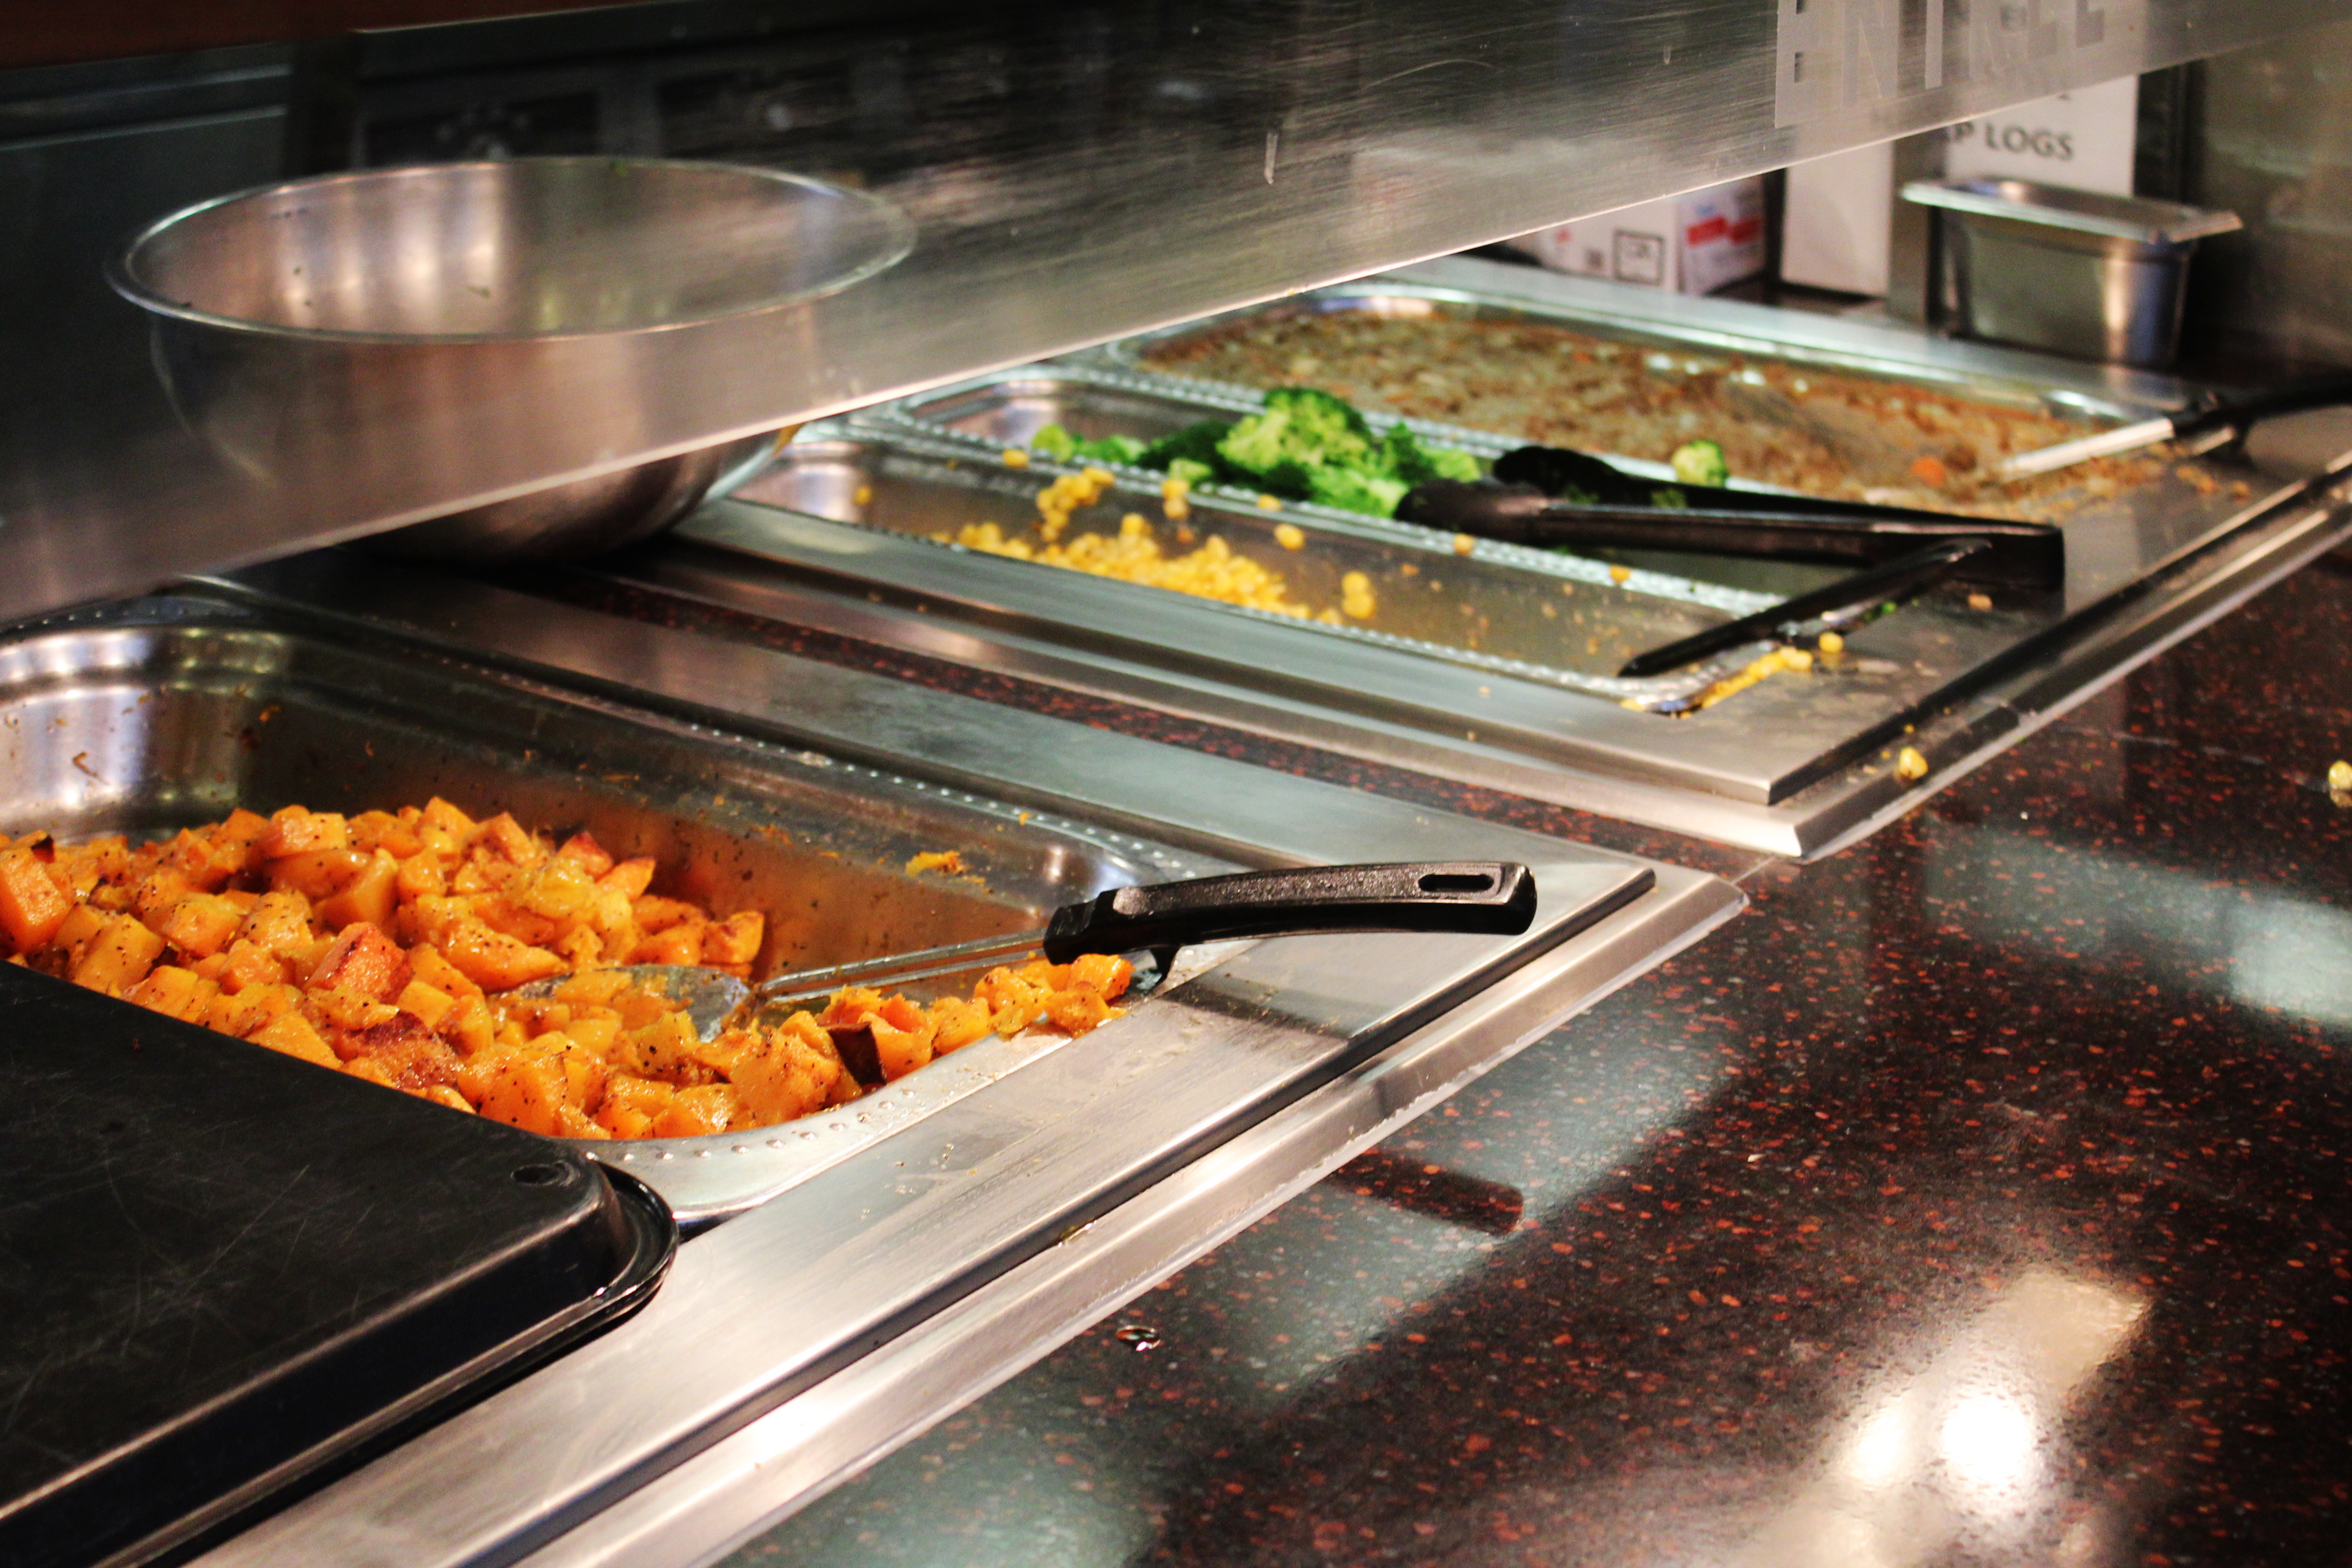 Attrayant Bates, Bae Pao Lu Chow And Pomeroy Dining Halls Will Serve Several New  International Dishes This Week.